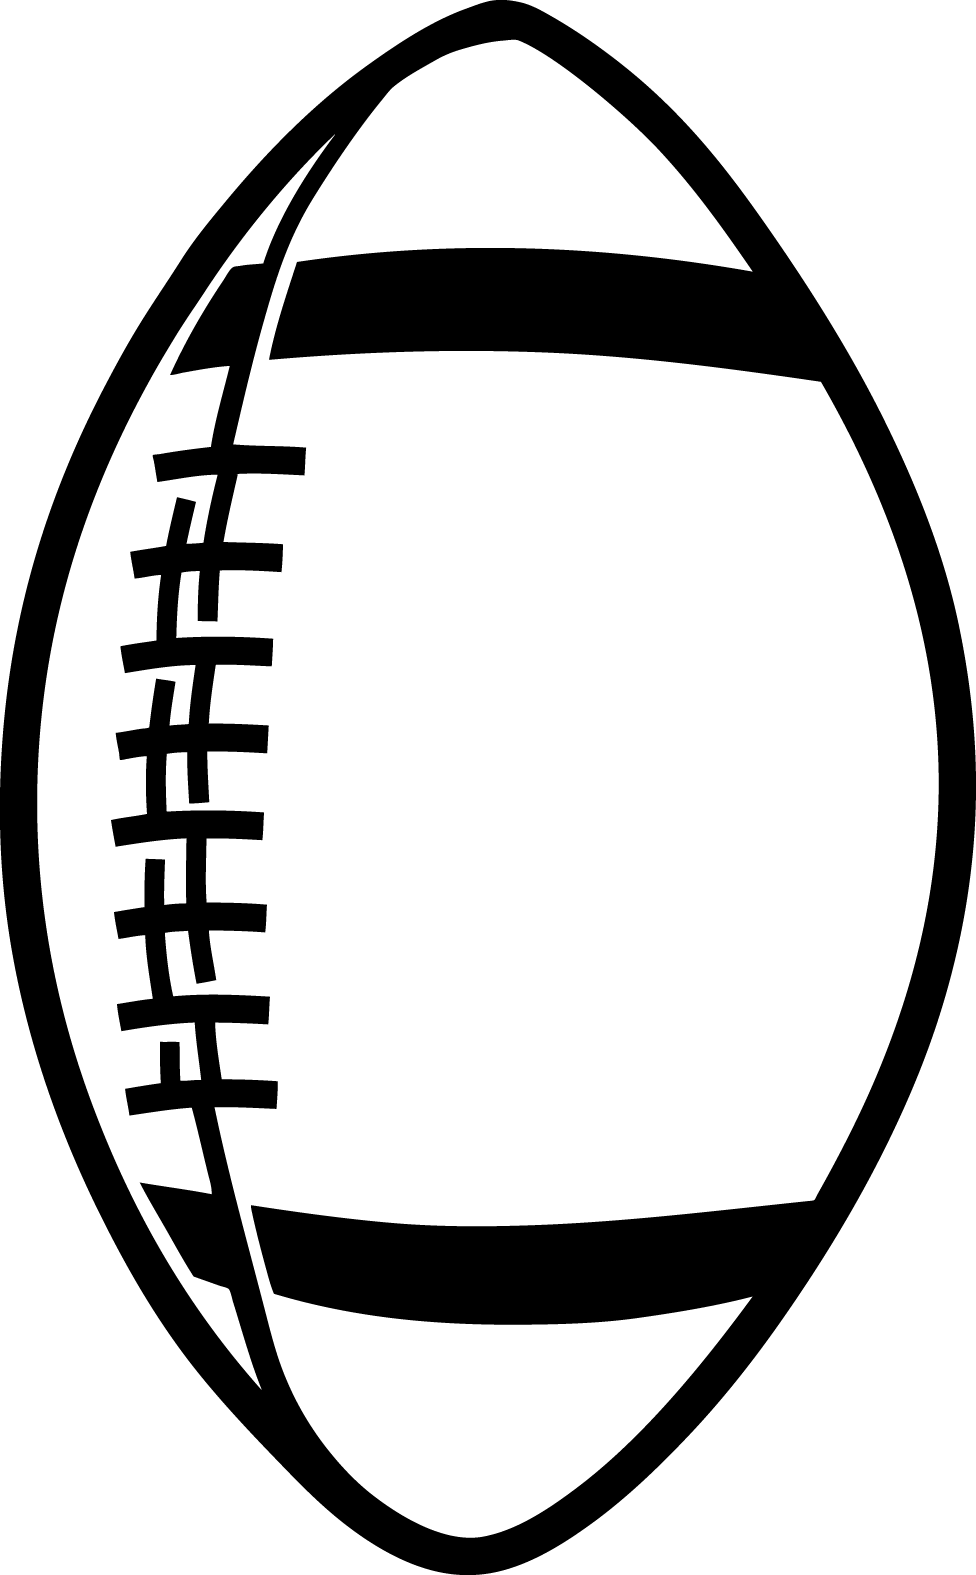 Images For > American Football Clipart Black And White